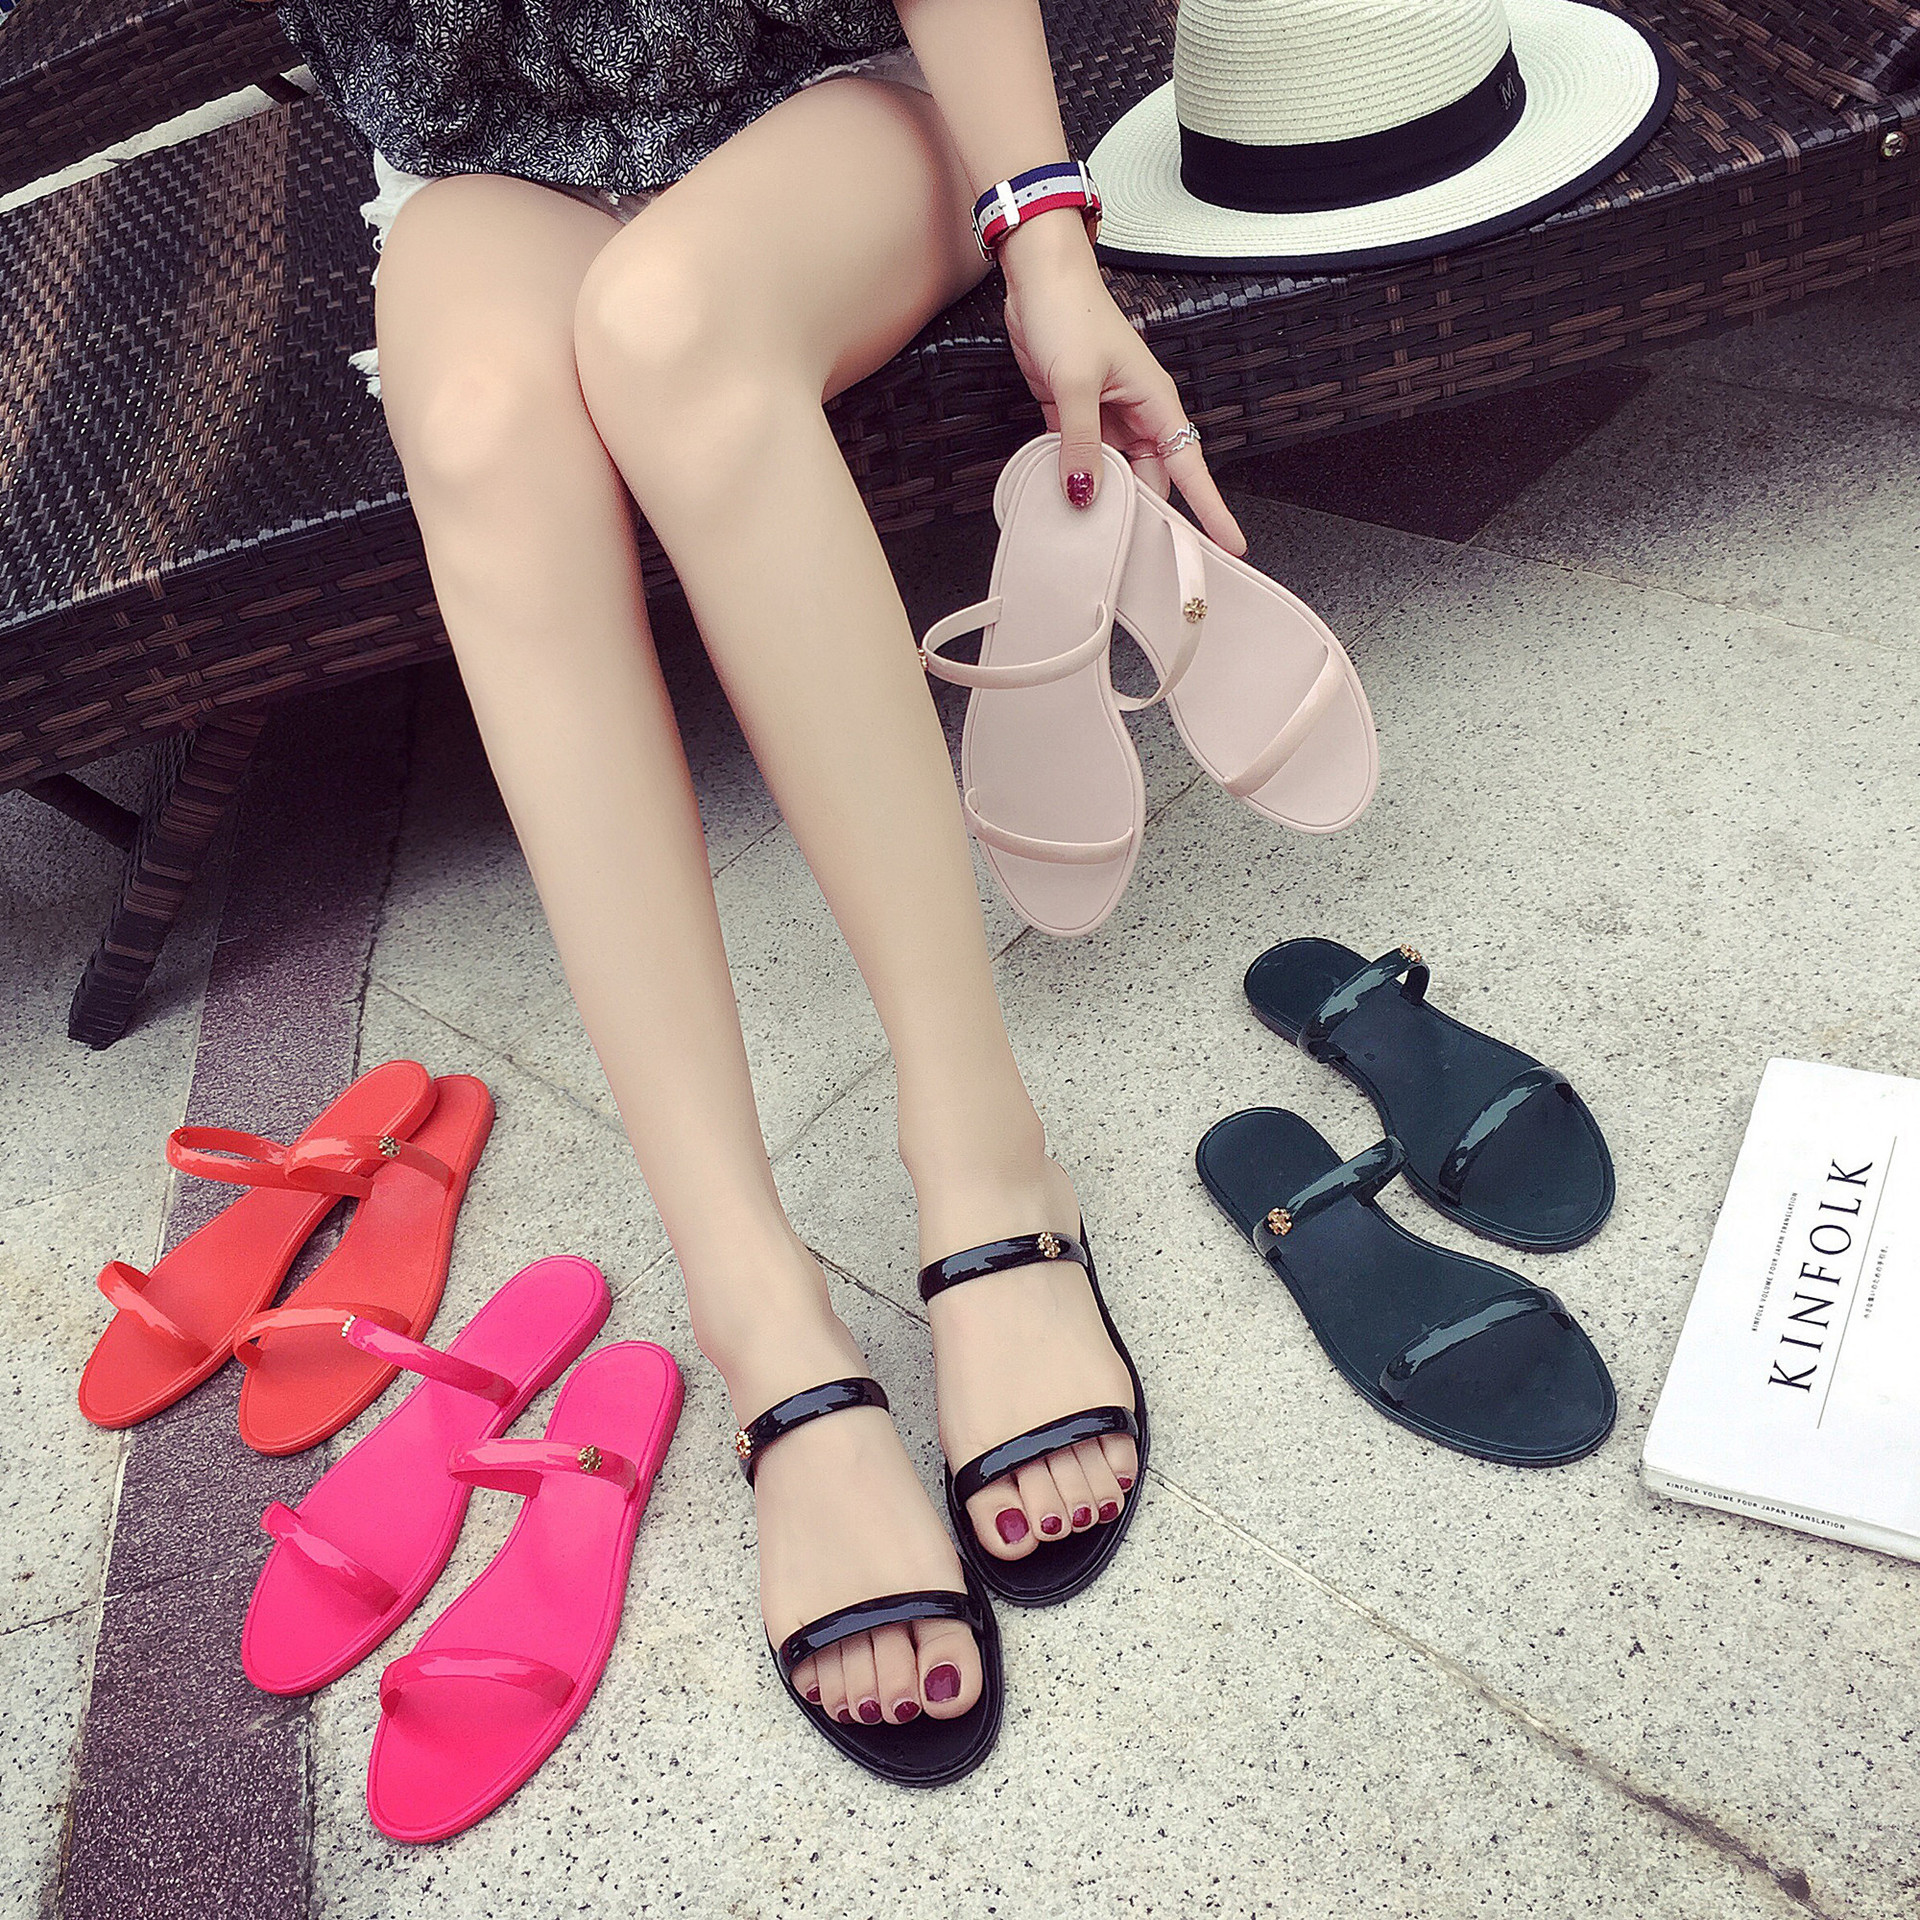 2018 Summer Casual Style Jelly Shoes Women Sandals Flats Rivet Slippers Fashion Holiday Beach Woman Shoes Flip Flops Size 36-402018 Summer Casual Style Jelly Shoes Women Sandals Flats Rivet Slippers Fashion Holiday Beach Woman Shoes Flip Flops Size 36-40